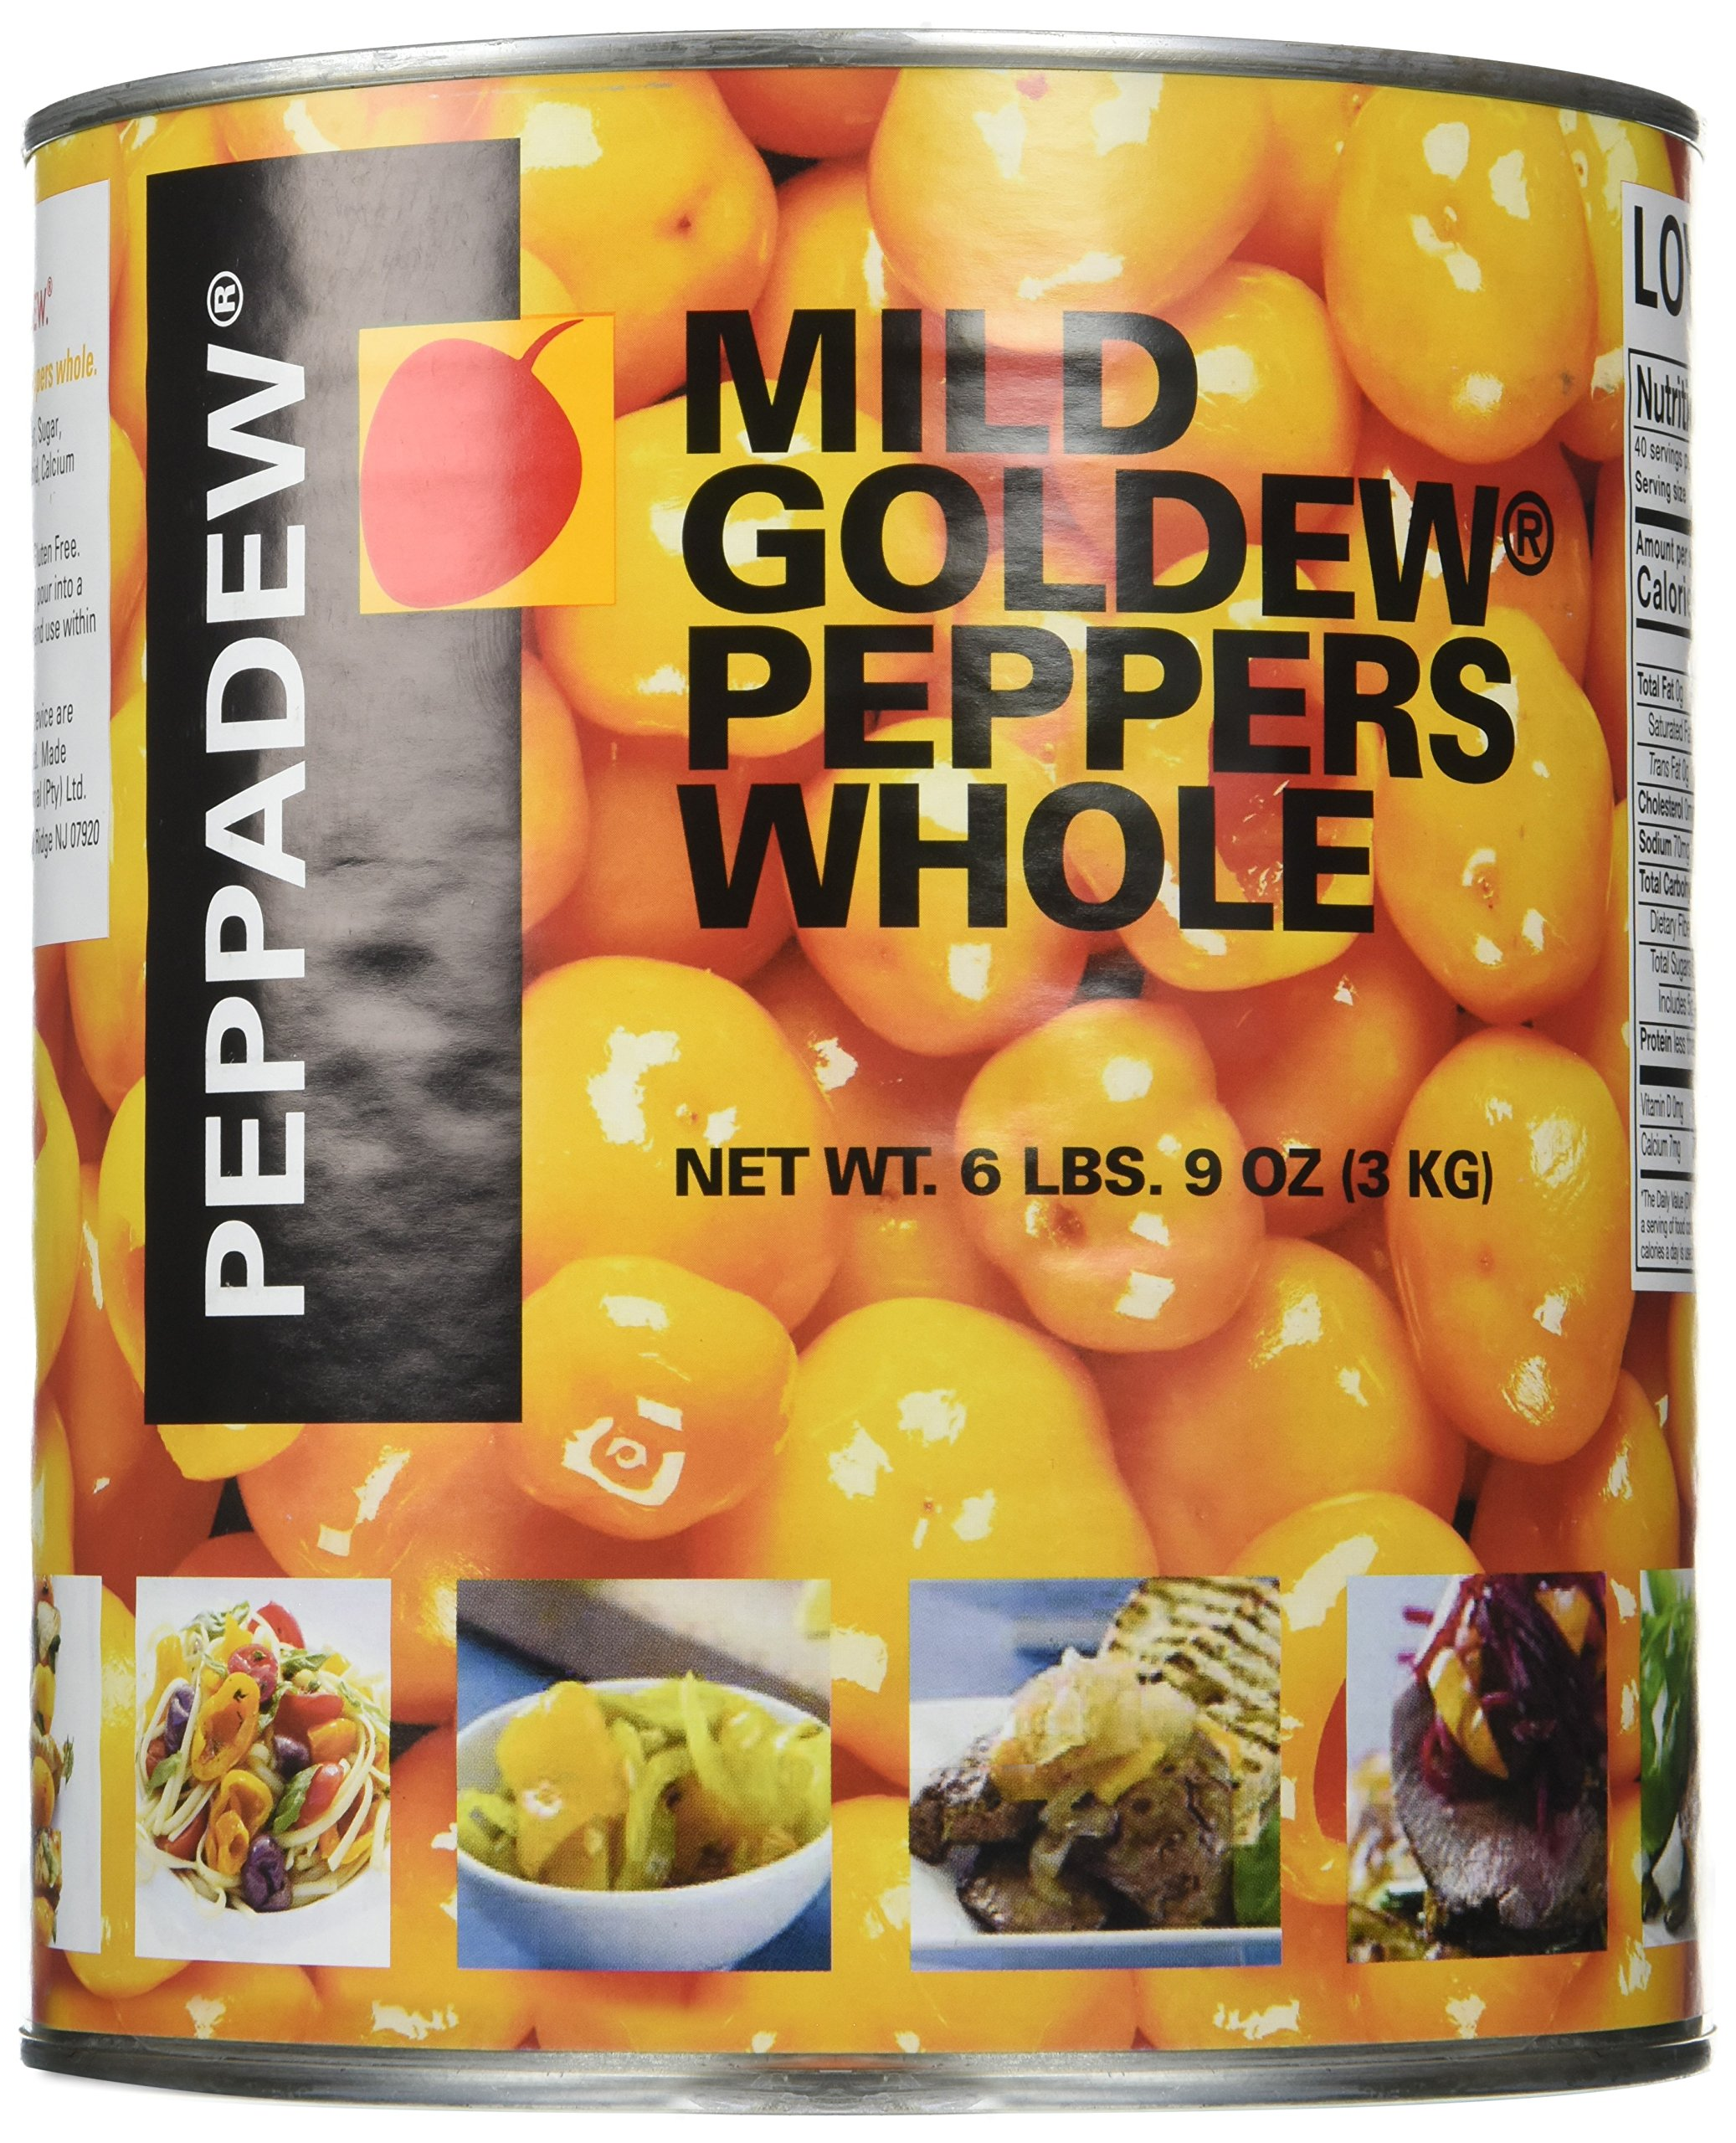 Peppadew Whole Goldew Fruit Yellow Peppers - 105oz